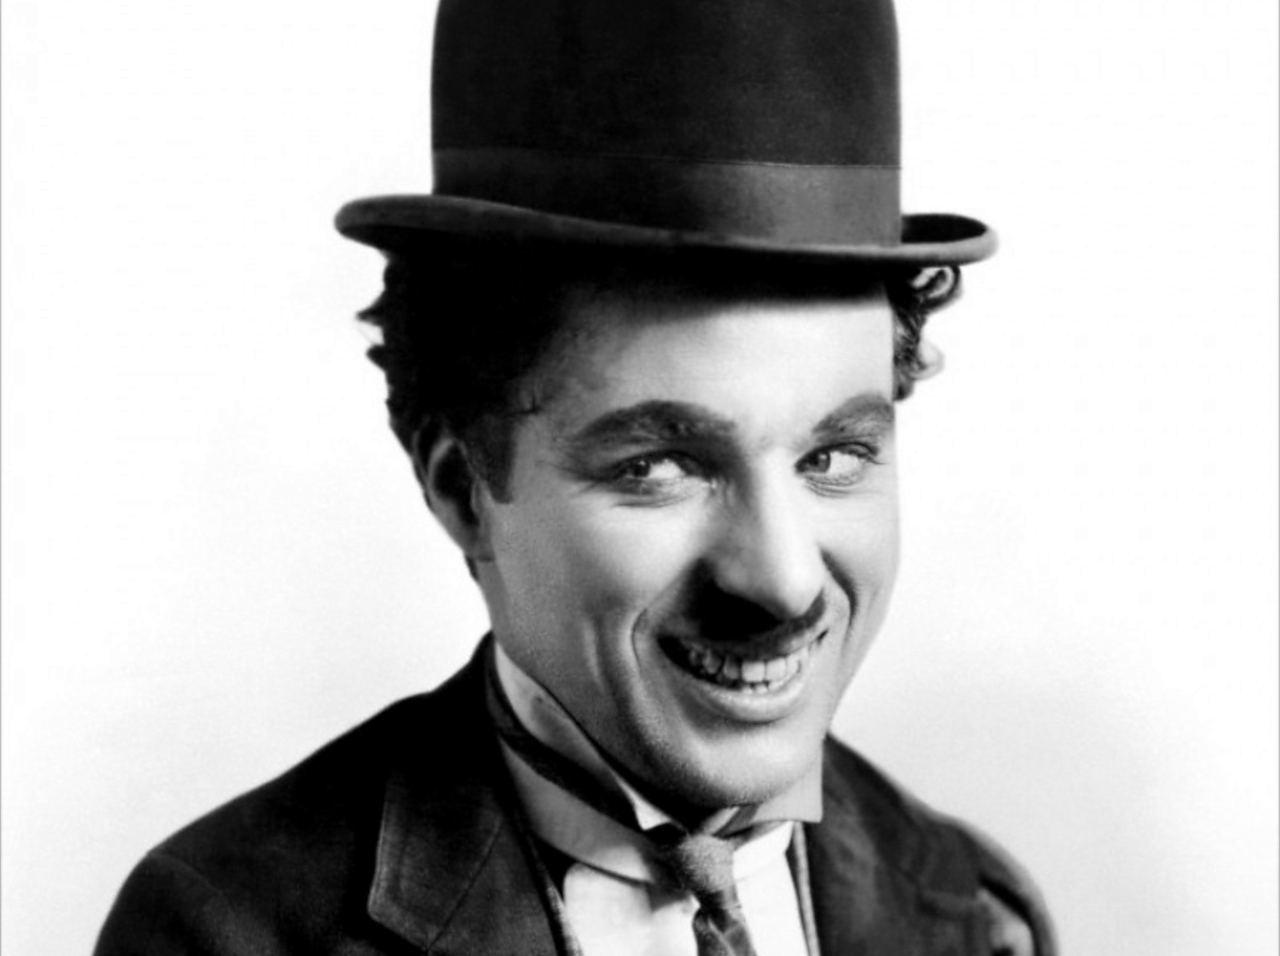 charlie chaplin hd wallpapers-9 | HD Wallpapers, HD images ...